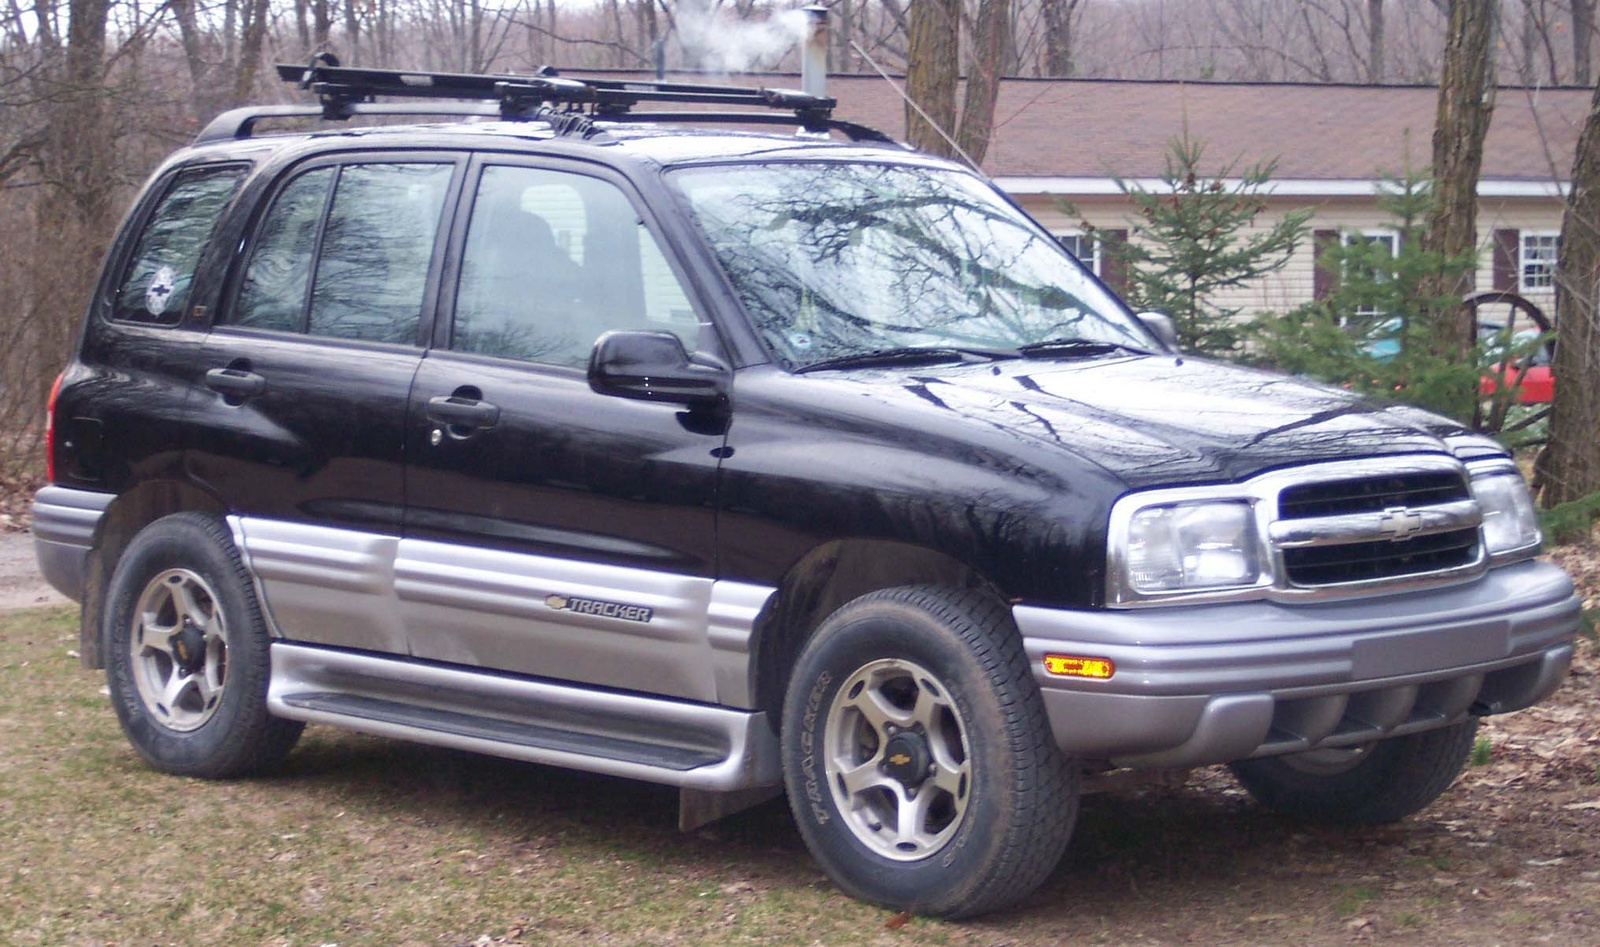 2001 Chevrolet Tracker LT 4WD, Picture of 2001 Chevrolet Tracker 4 Dr LT 4WD SUV, exterior